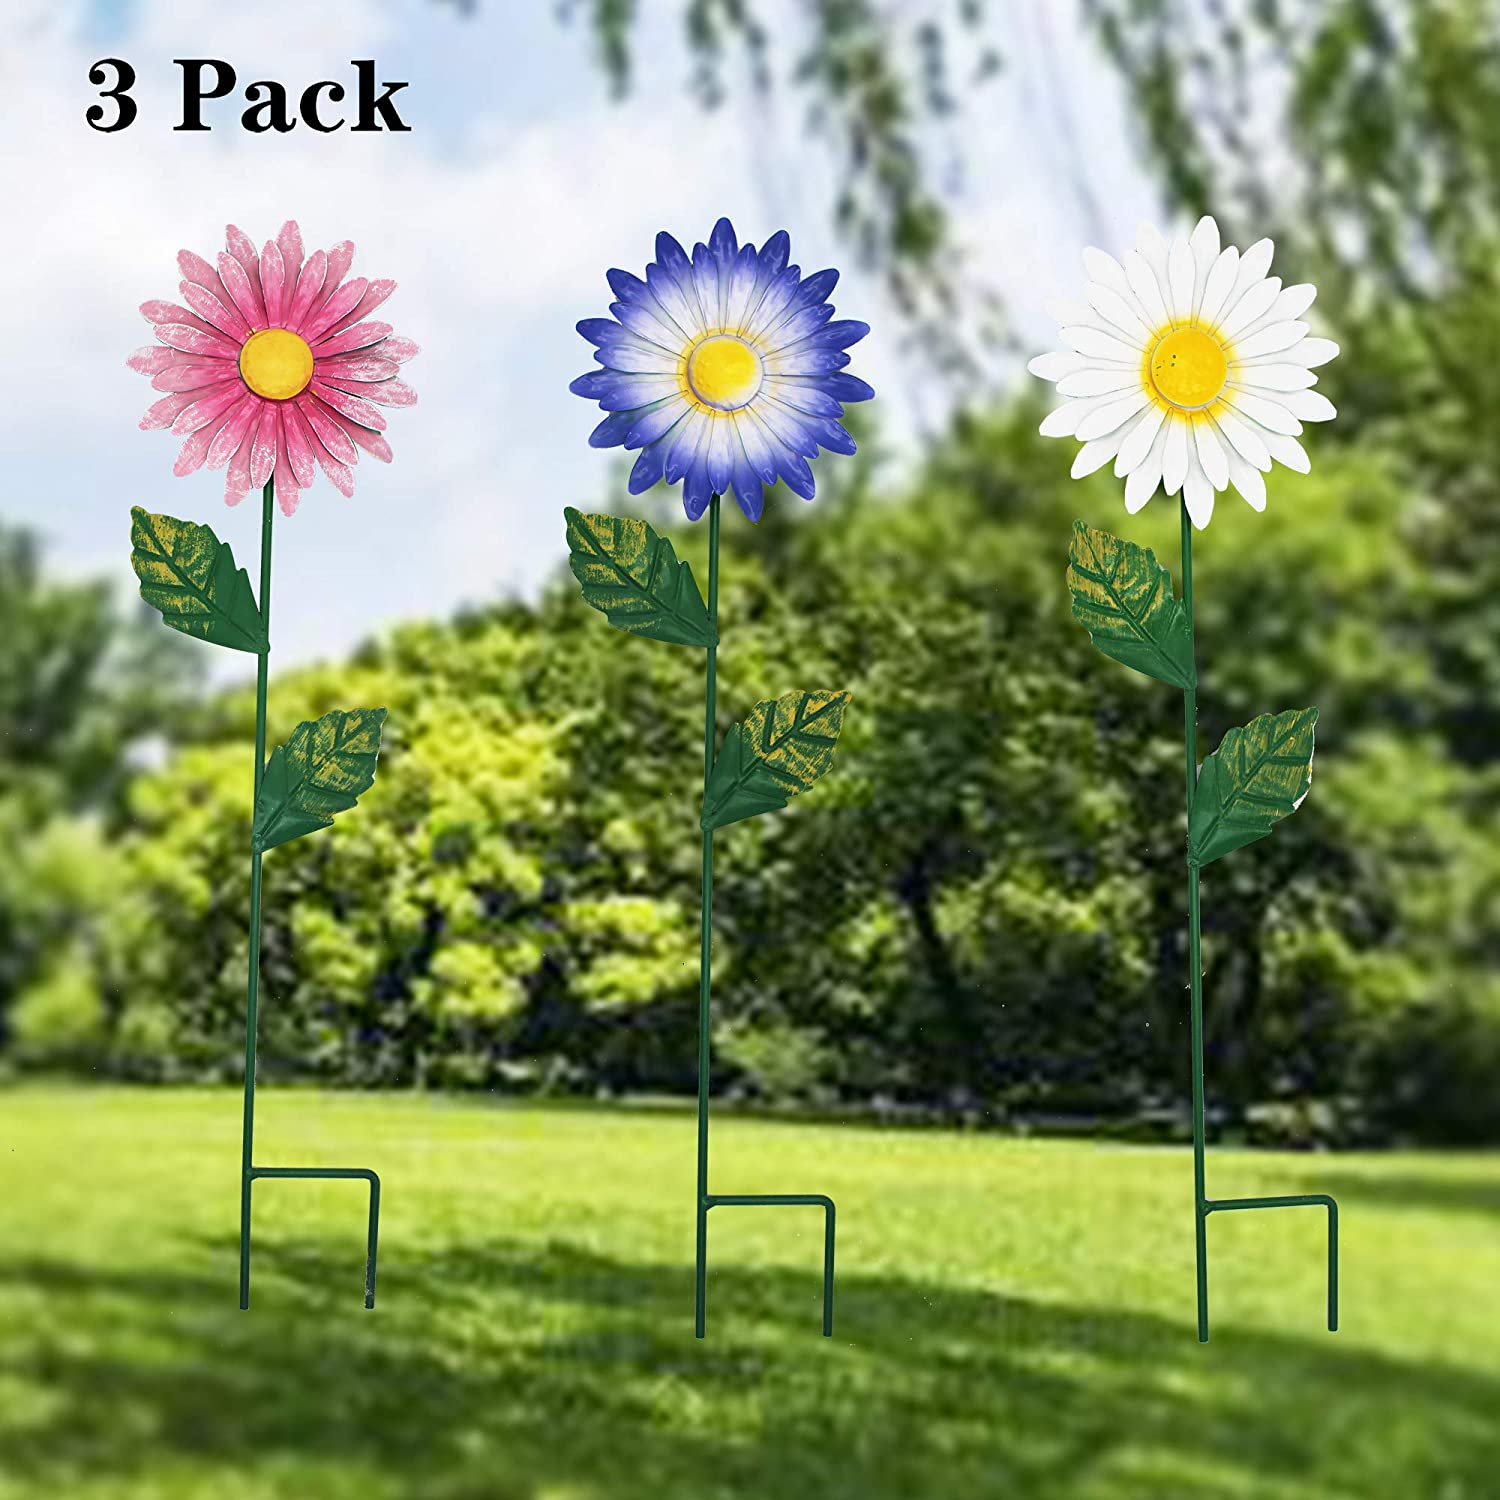 WOLUNWO 17 Inch Daisies Flower Garden Stakes Decor, Metal Daisies Decorative Garden for Indoor/Outdoor Yard, Patio Plant Pot, Flower Bed,Walkway,Pathway,Yard,Lawn, Set of 3